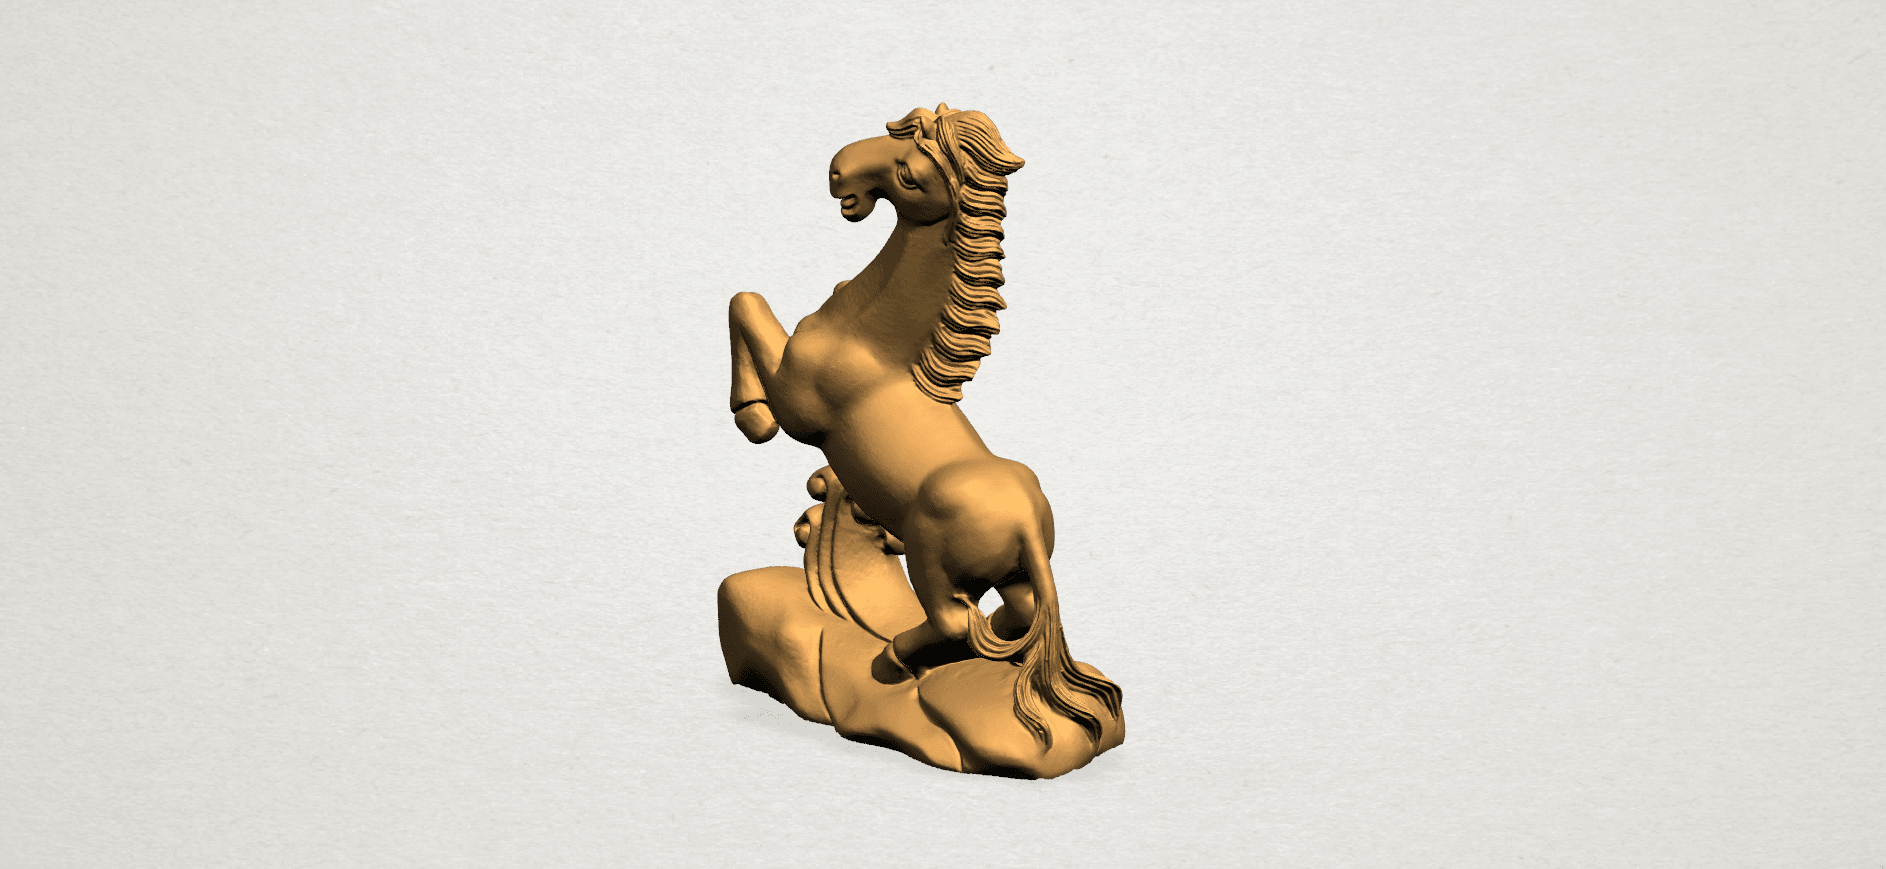 Chinese Horoscope07-A04.png Download free STL file Chinese Horoscope 07 Horse • 3D printer model, GeorgesNikkei